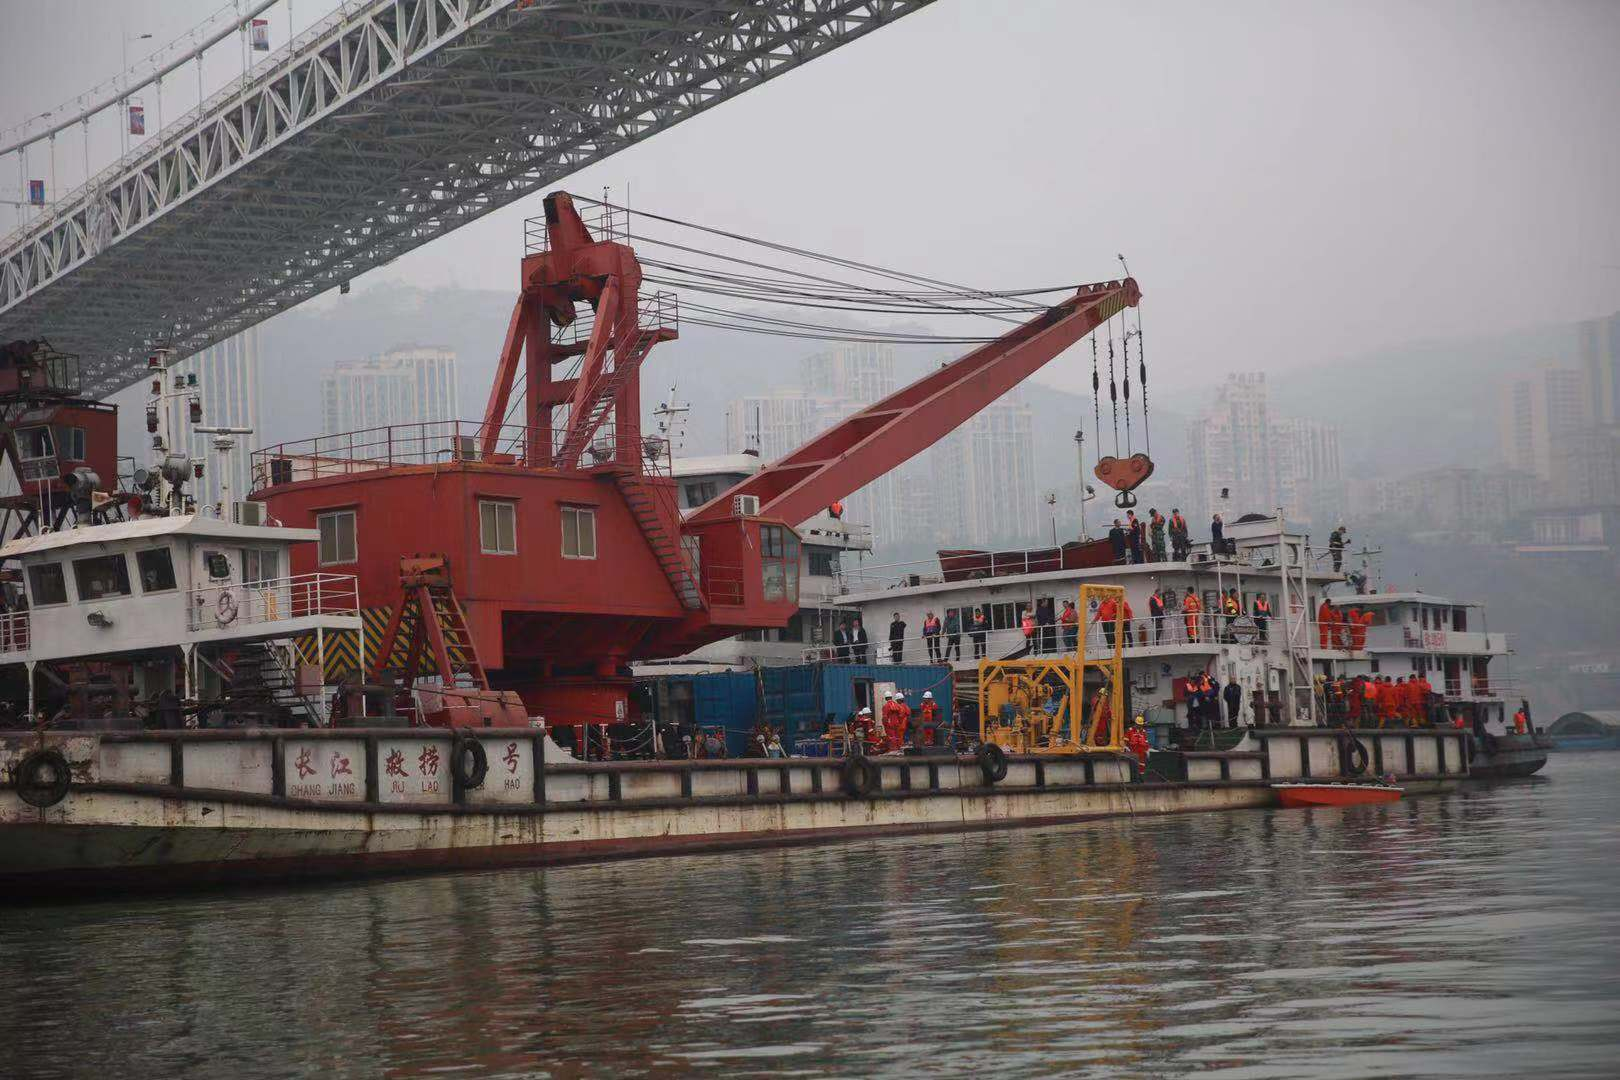 Salvage operations underway after bus plunged into river in Chongqing